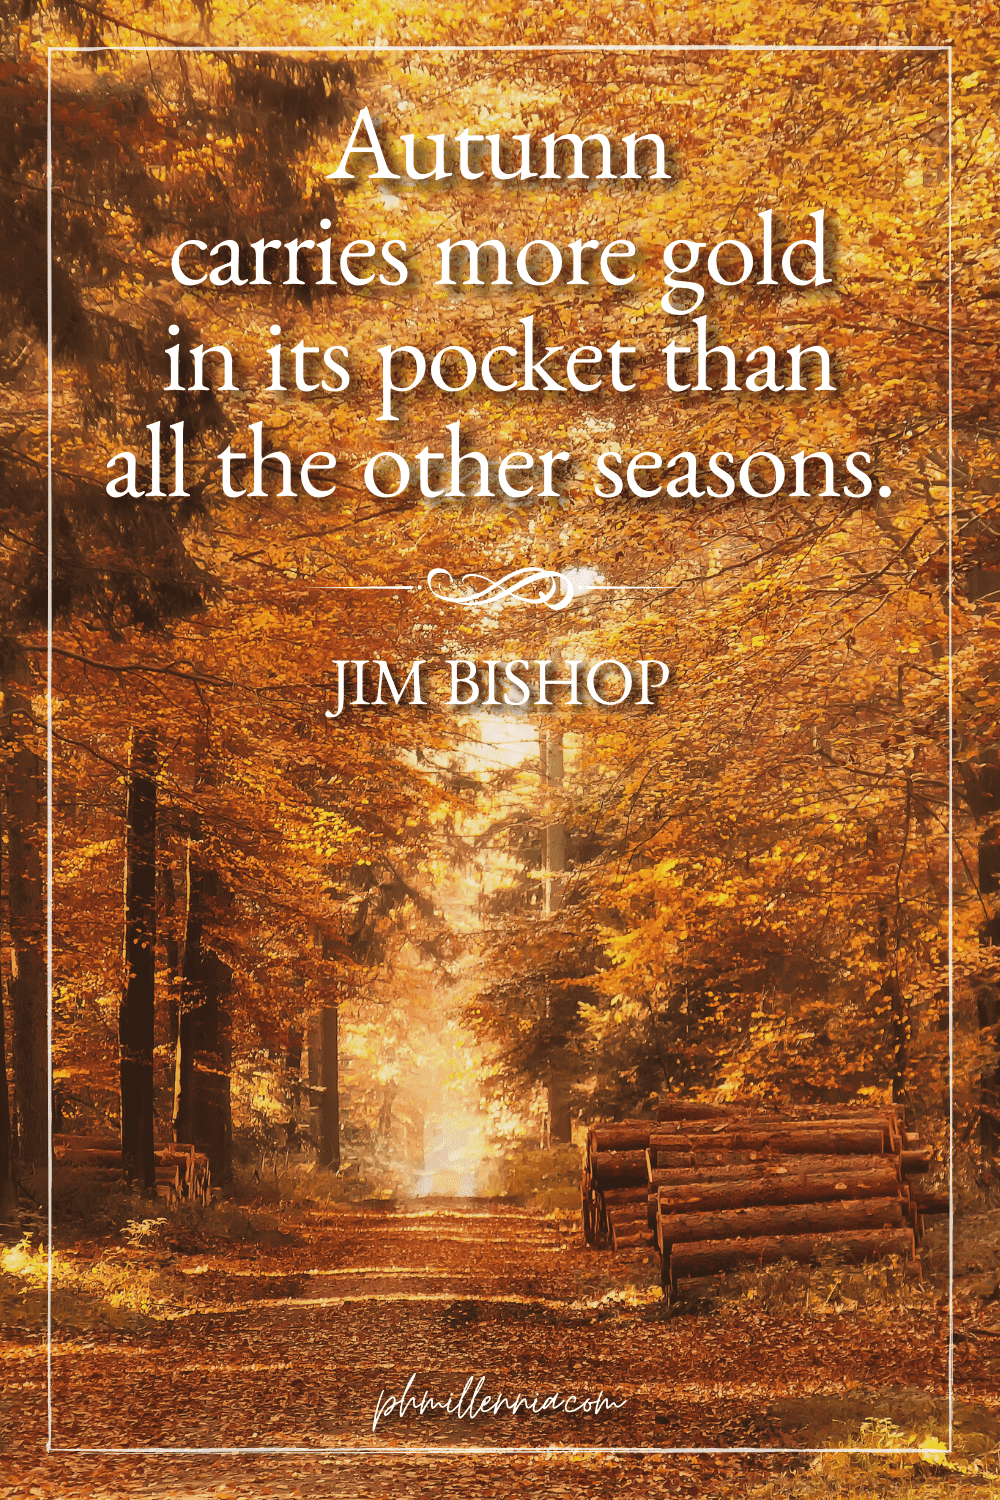 A graphic featuring an autumn quote/fall saying over an image of a pathway through a forest with trees in autumn/fall foliage and colors